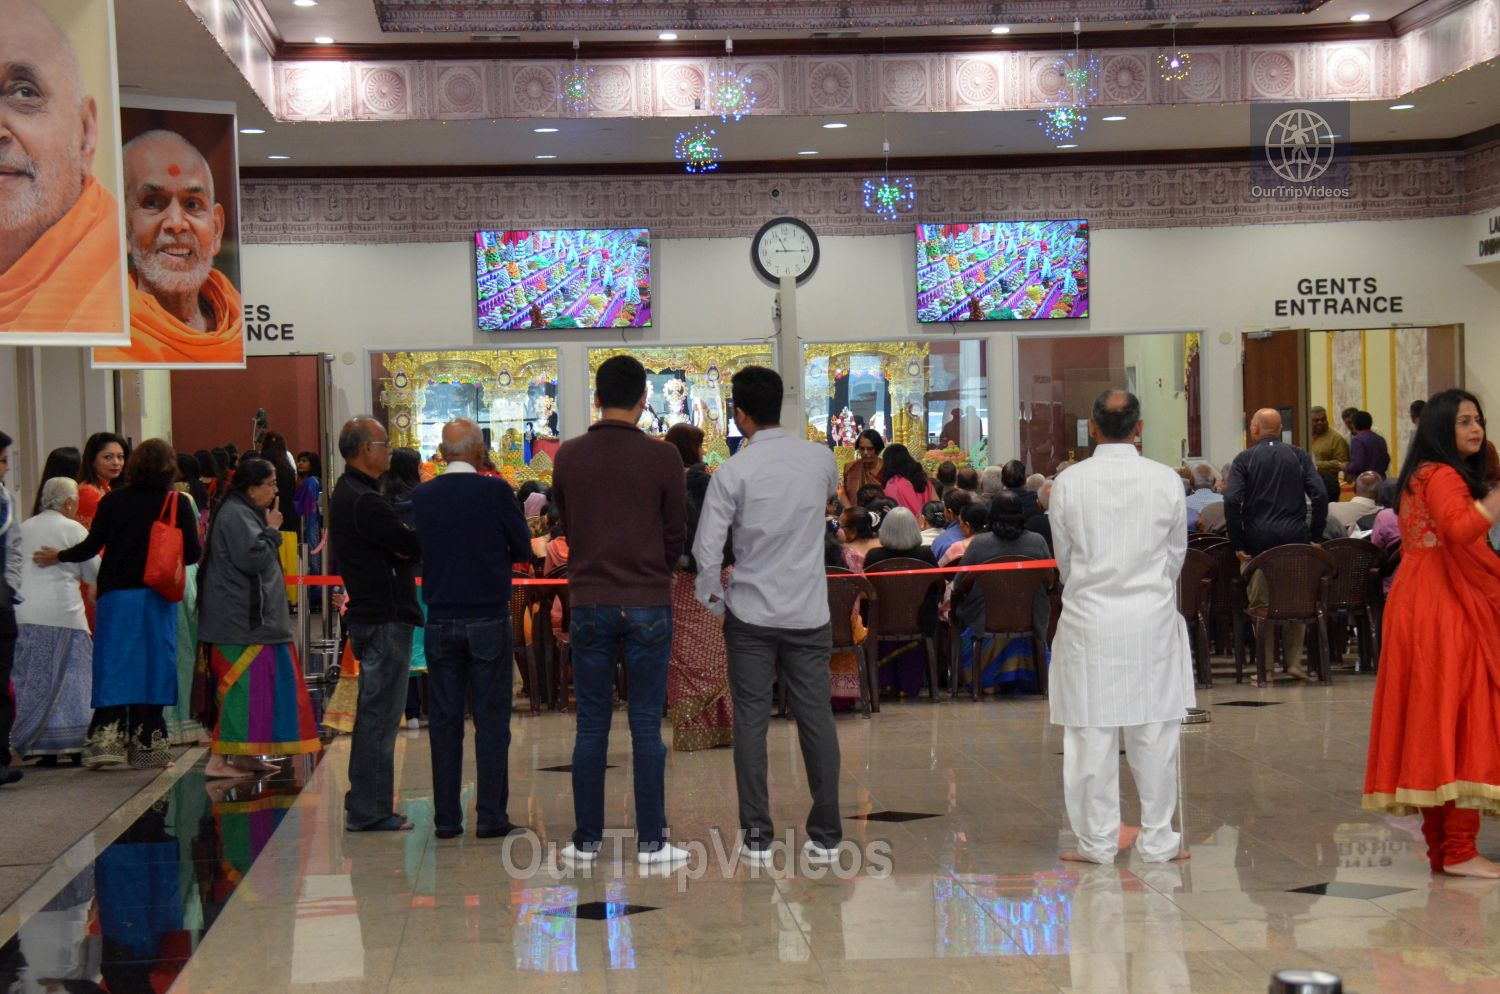 Diwali Celebrations at BAPS Swaminarayan Temple, Milpitas, CA, USA - Picture 6 of 25